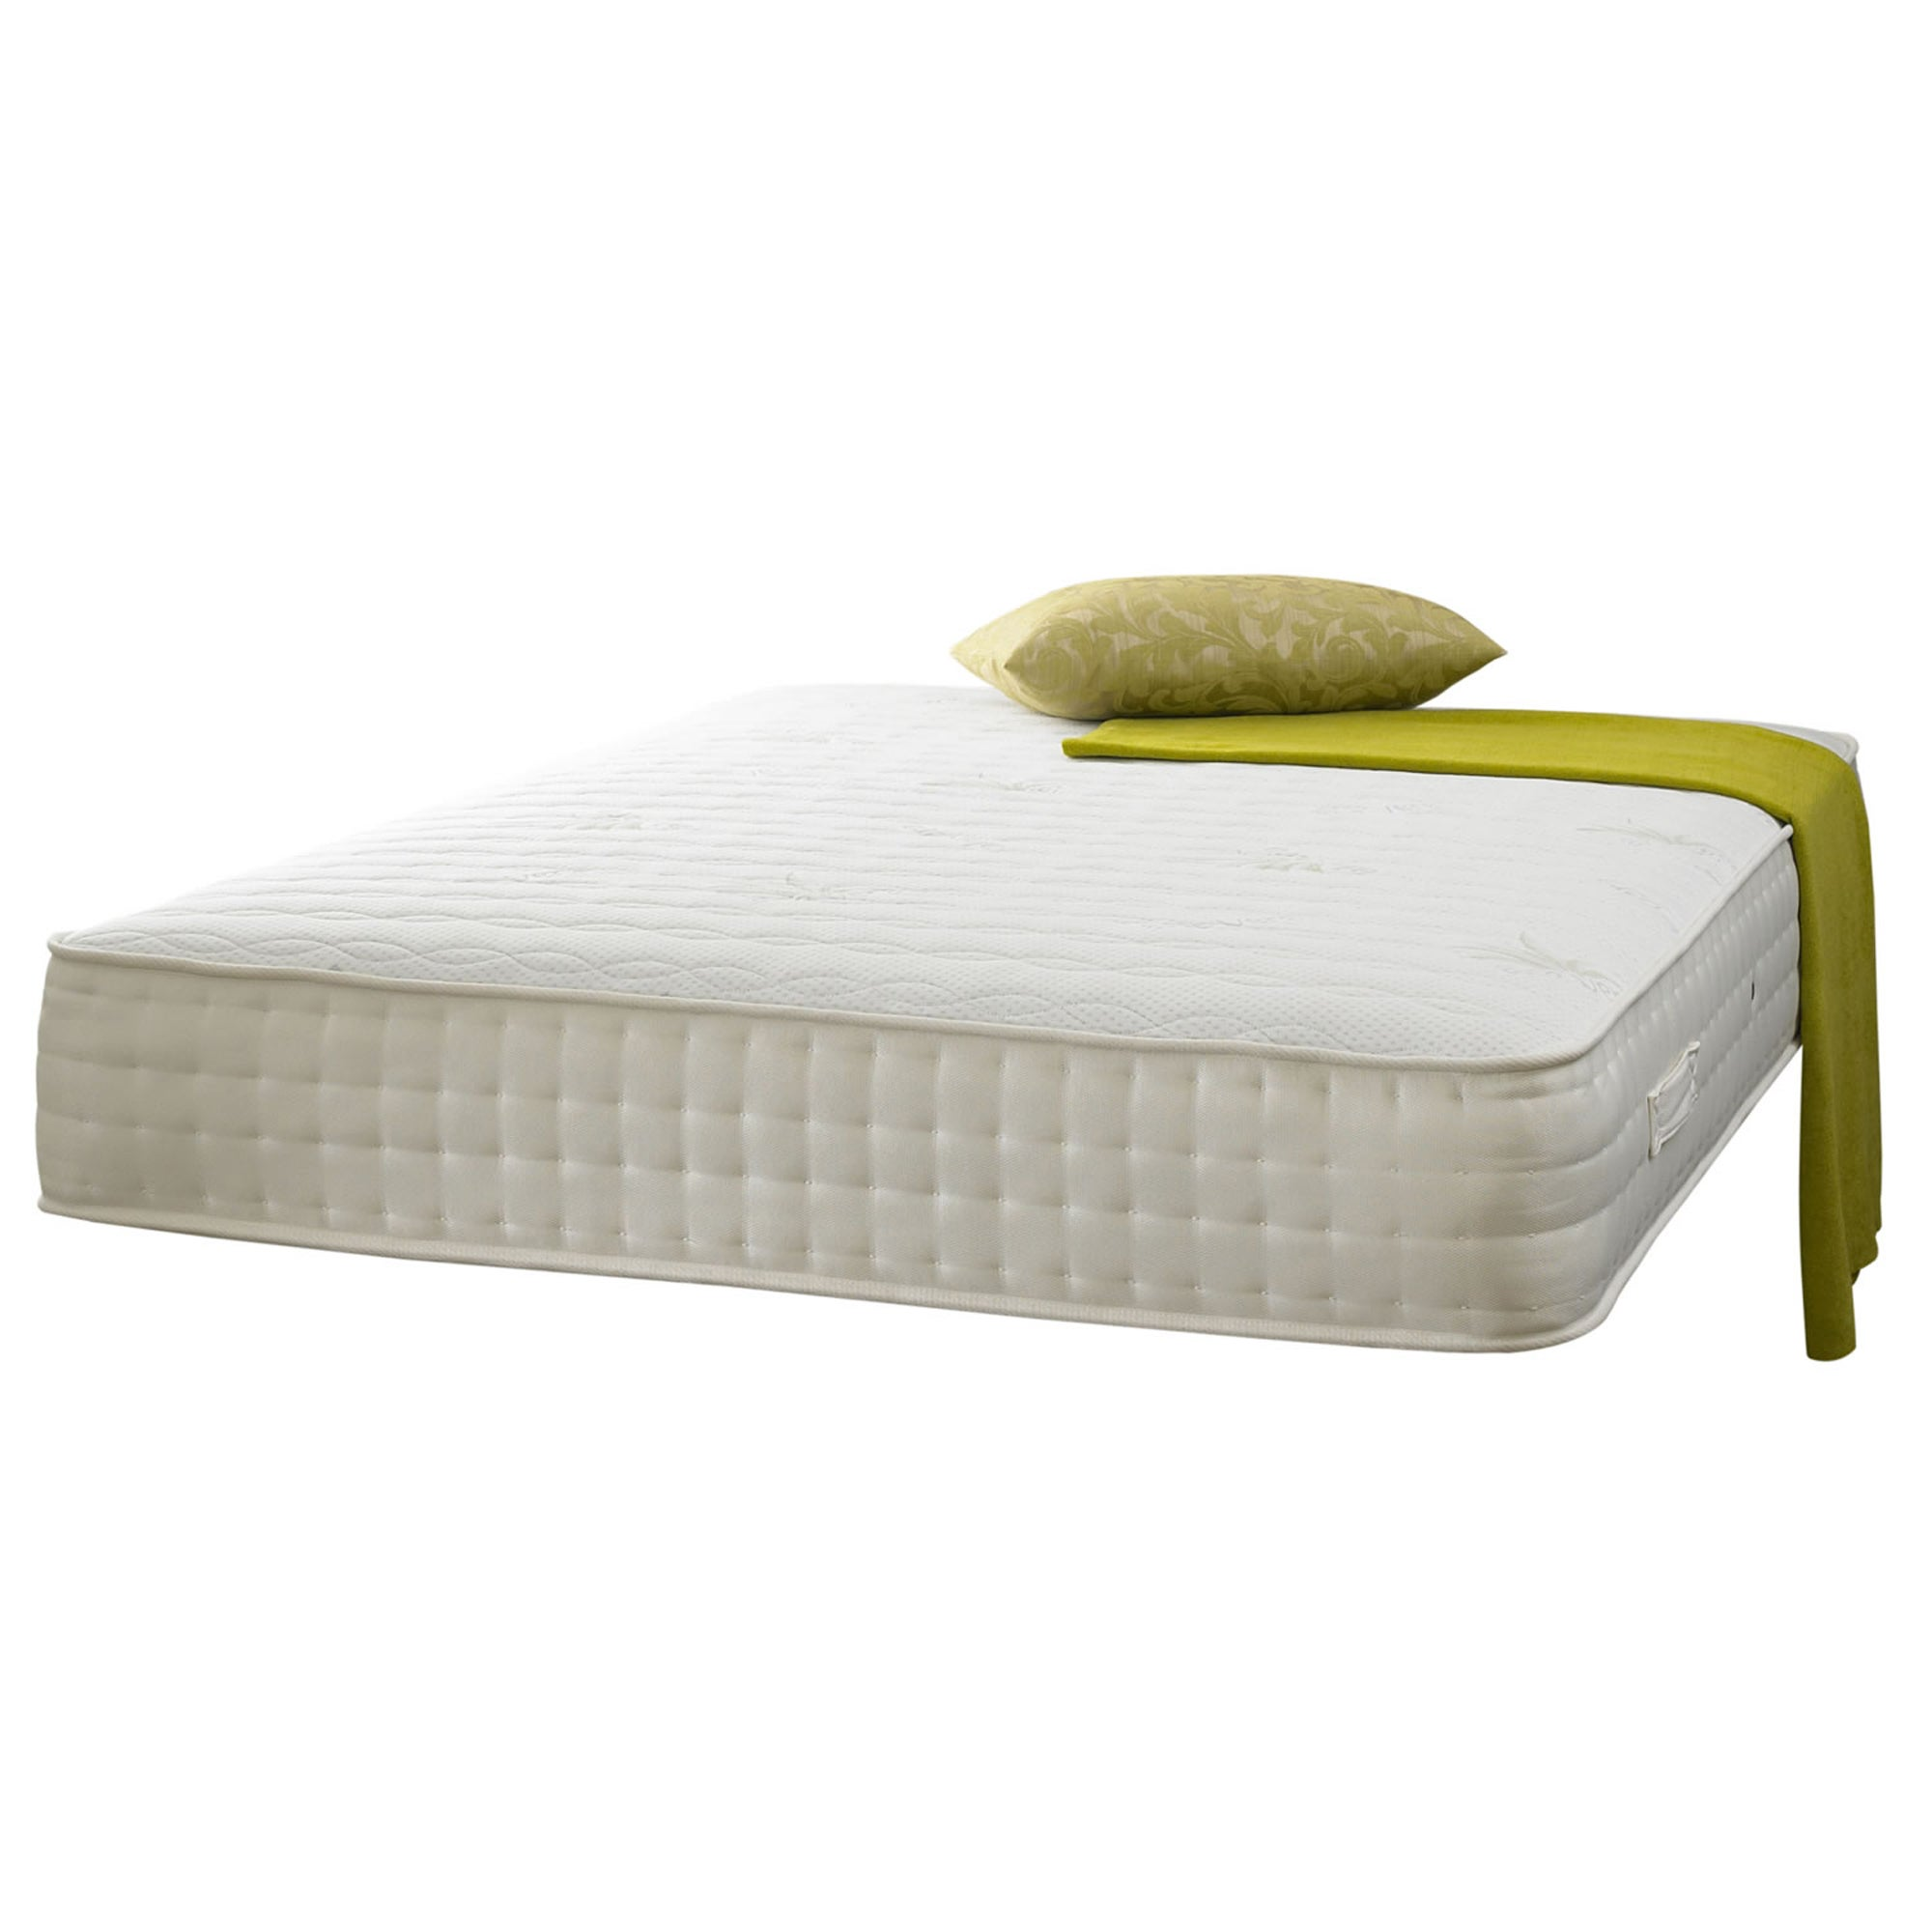 Click to view product details and reviews for Active Shire Aloe Vera 1000 Pocket Memory Mattress White.